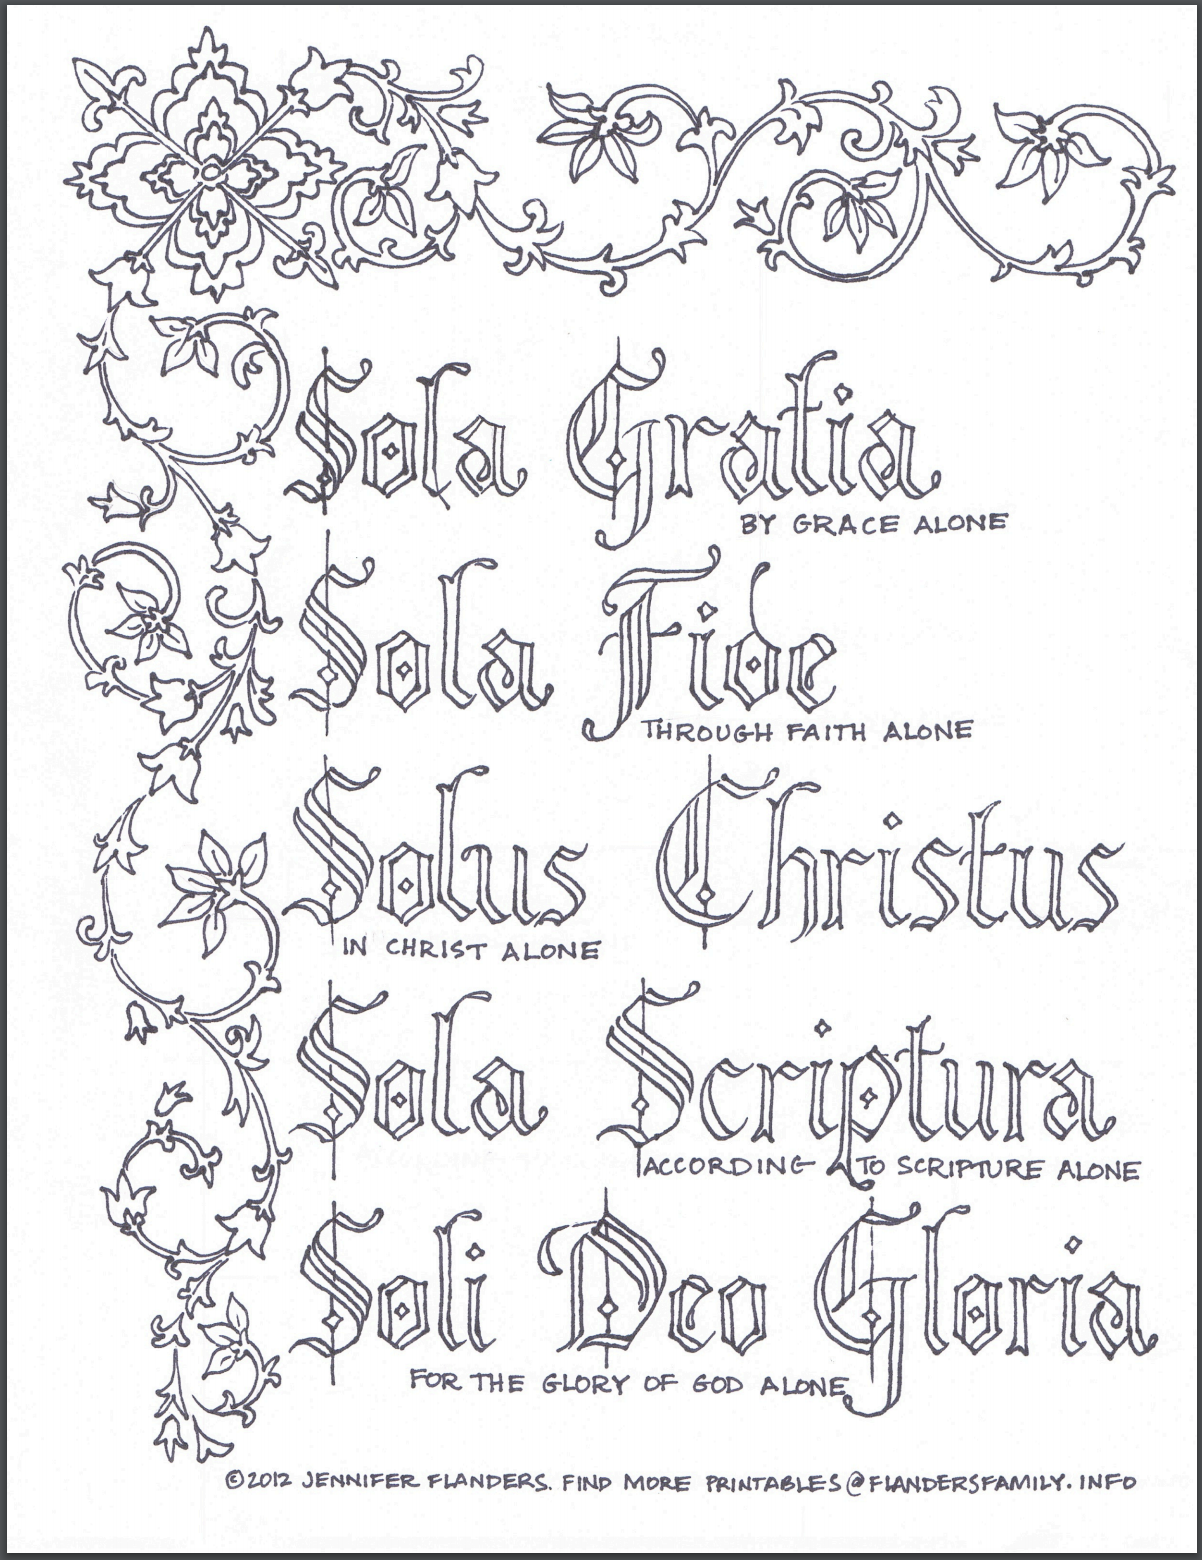 Free Printable Five Solas Coloring Page for Reformation Day